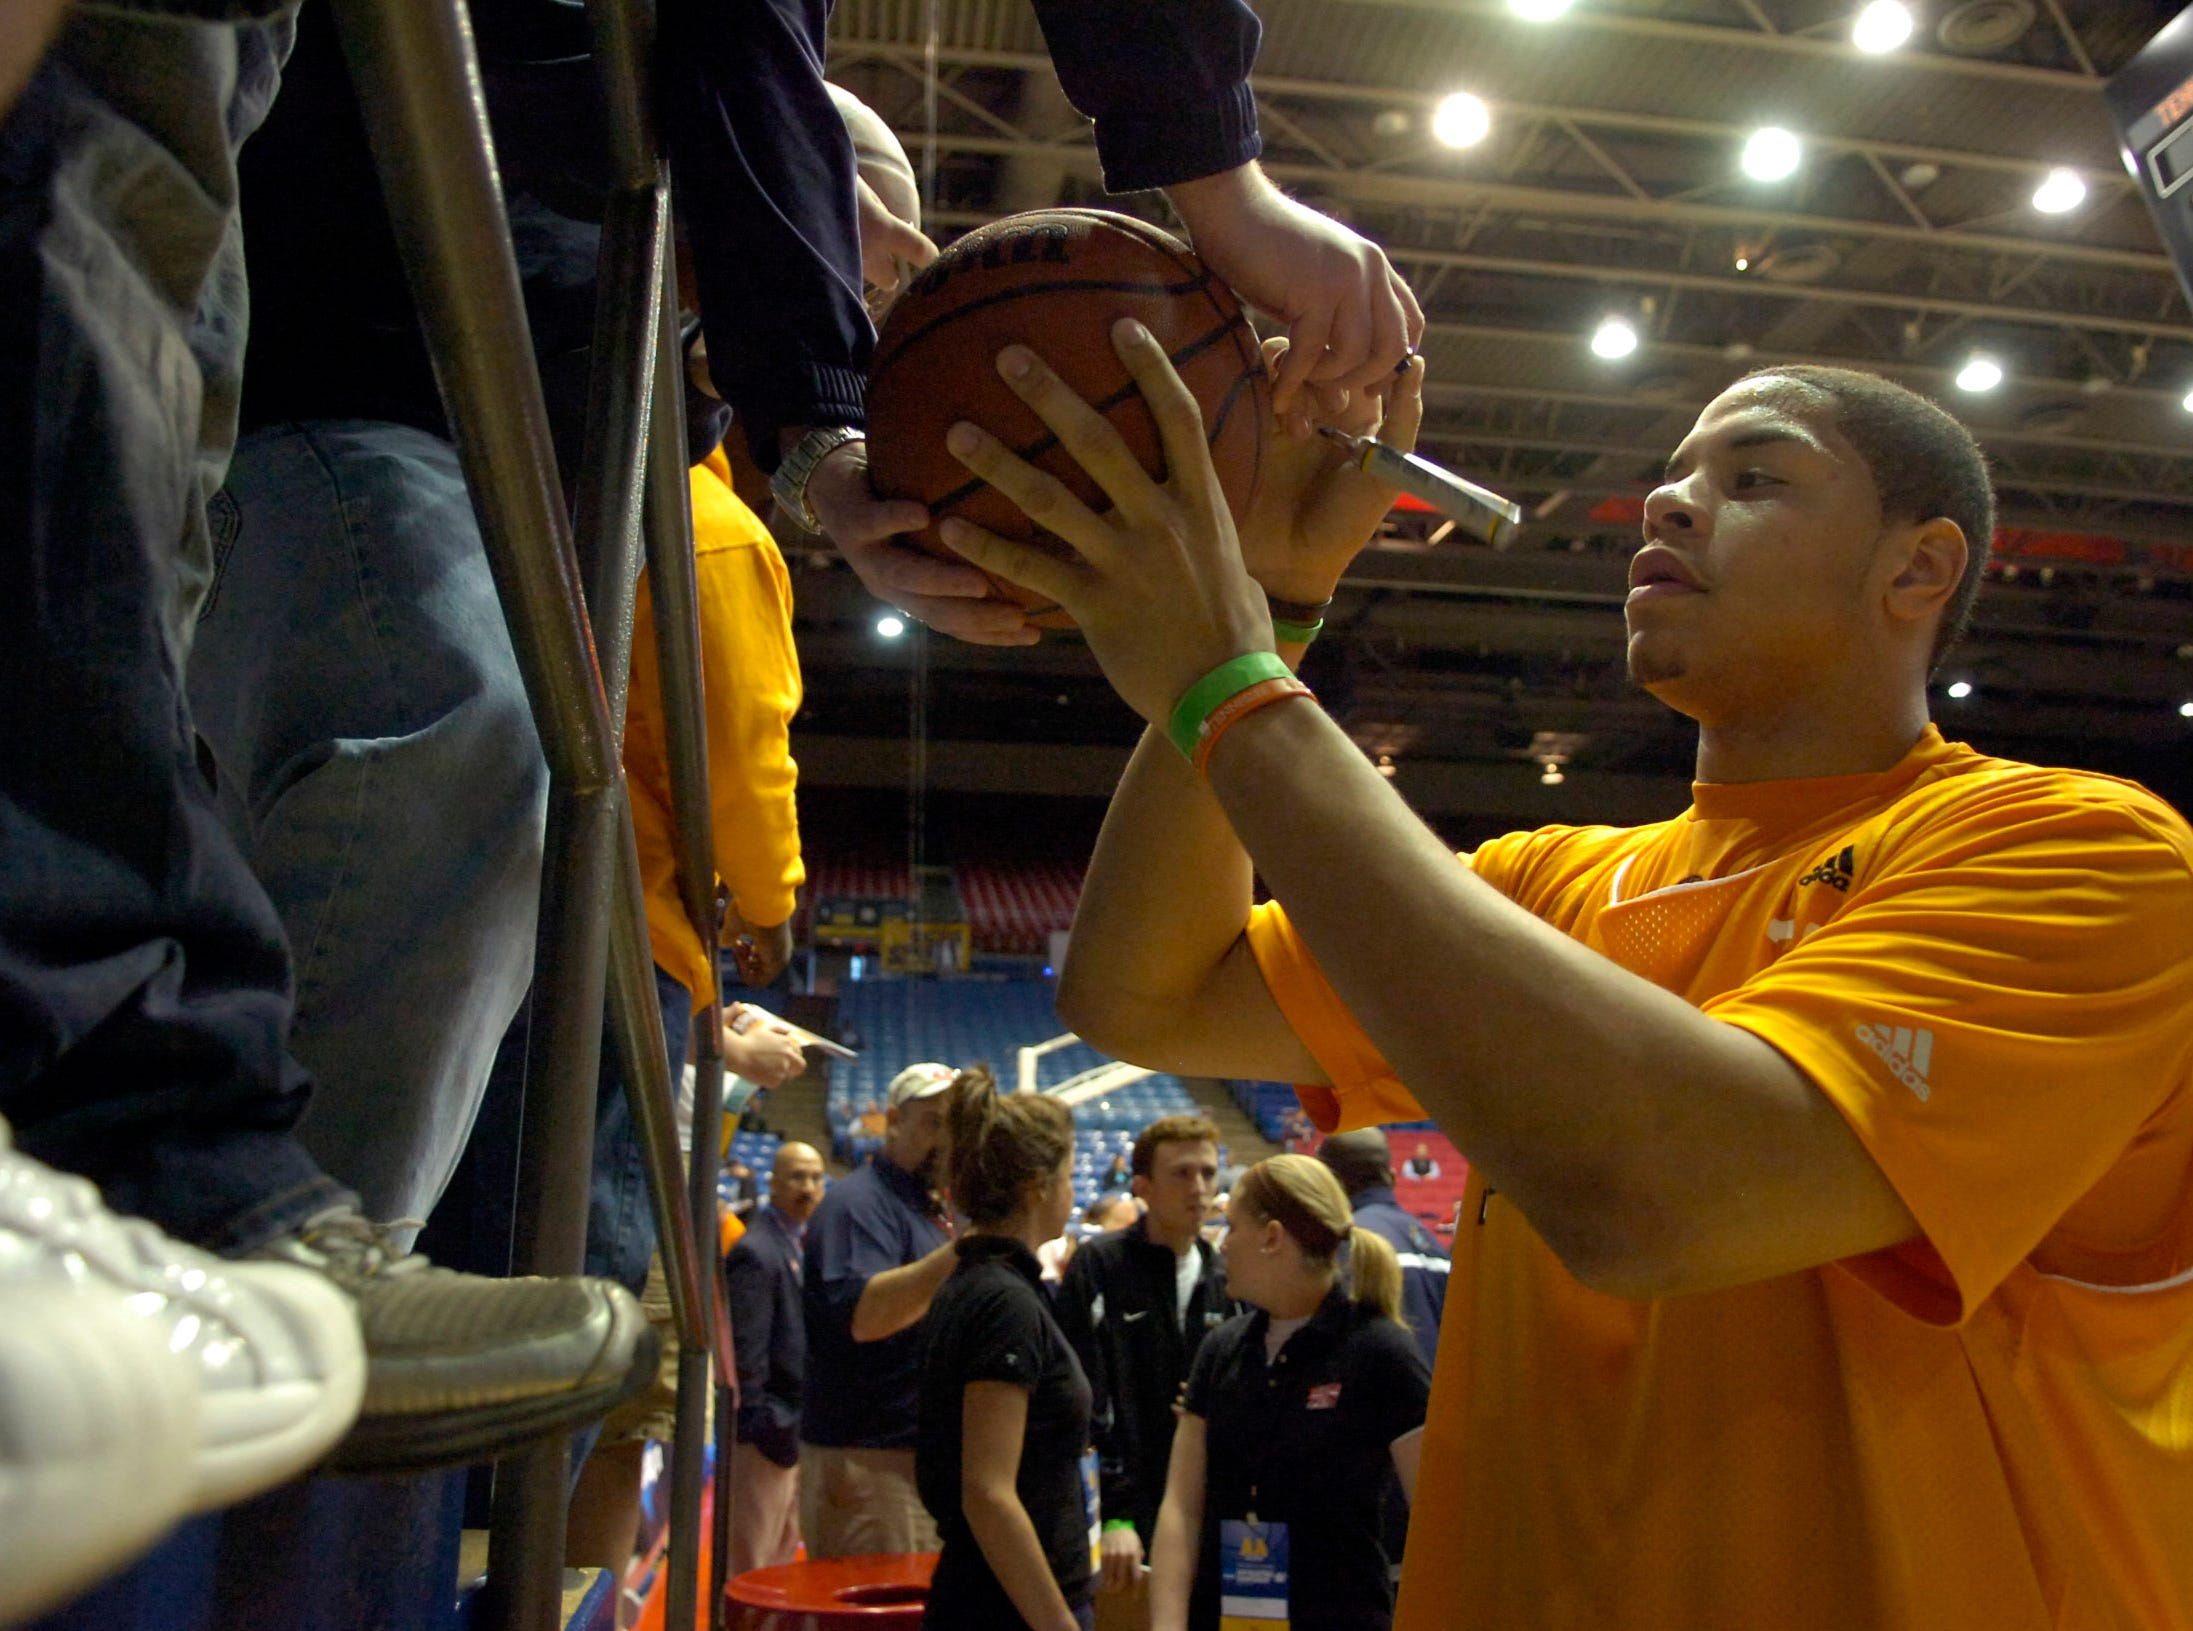 Tennessee's Brian Williams signs autographs for fans after practice on Thursday at the University of Dayton in Ohio. UT will play Oklahoma State in the first round of the 2009 NCAA tournament at 12:25 p.m. EST on Friday.